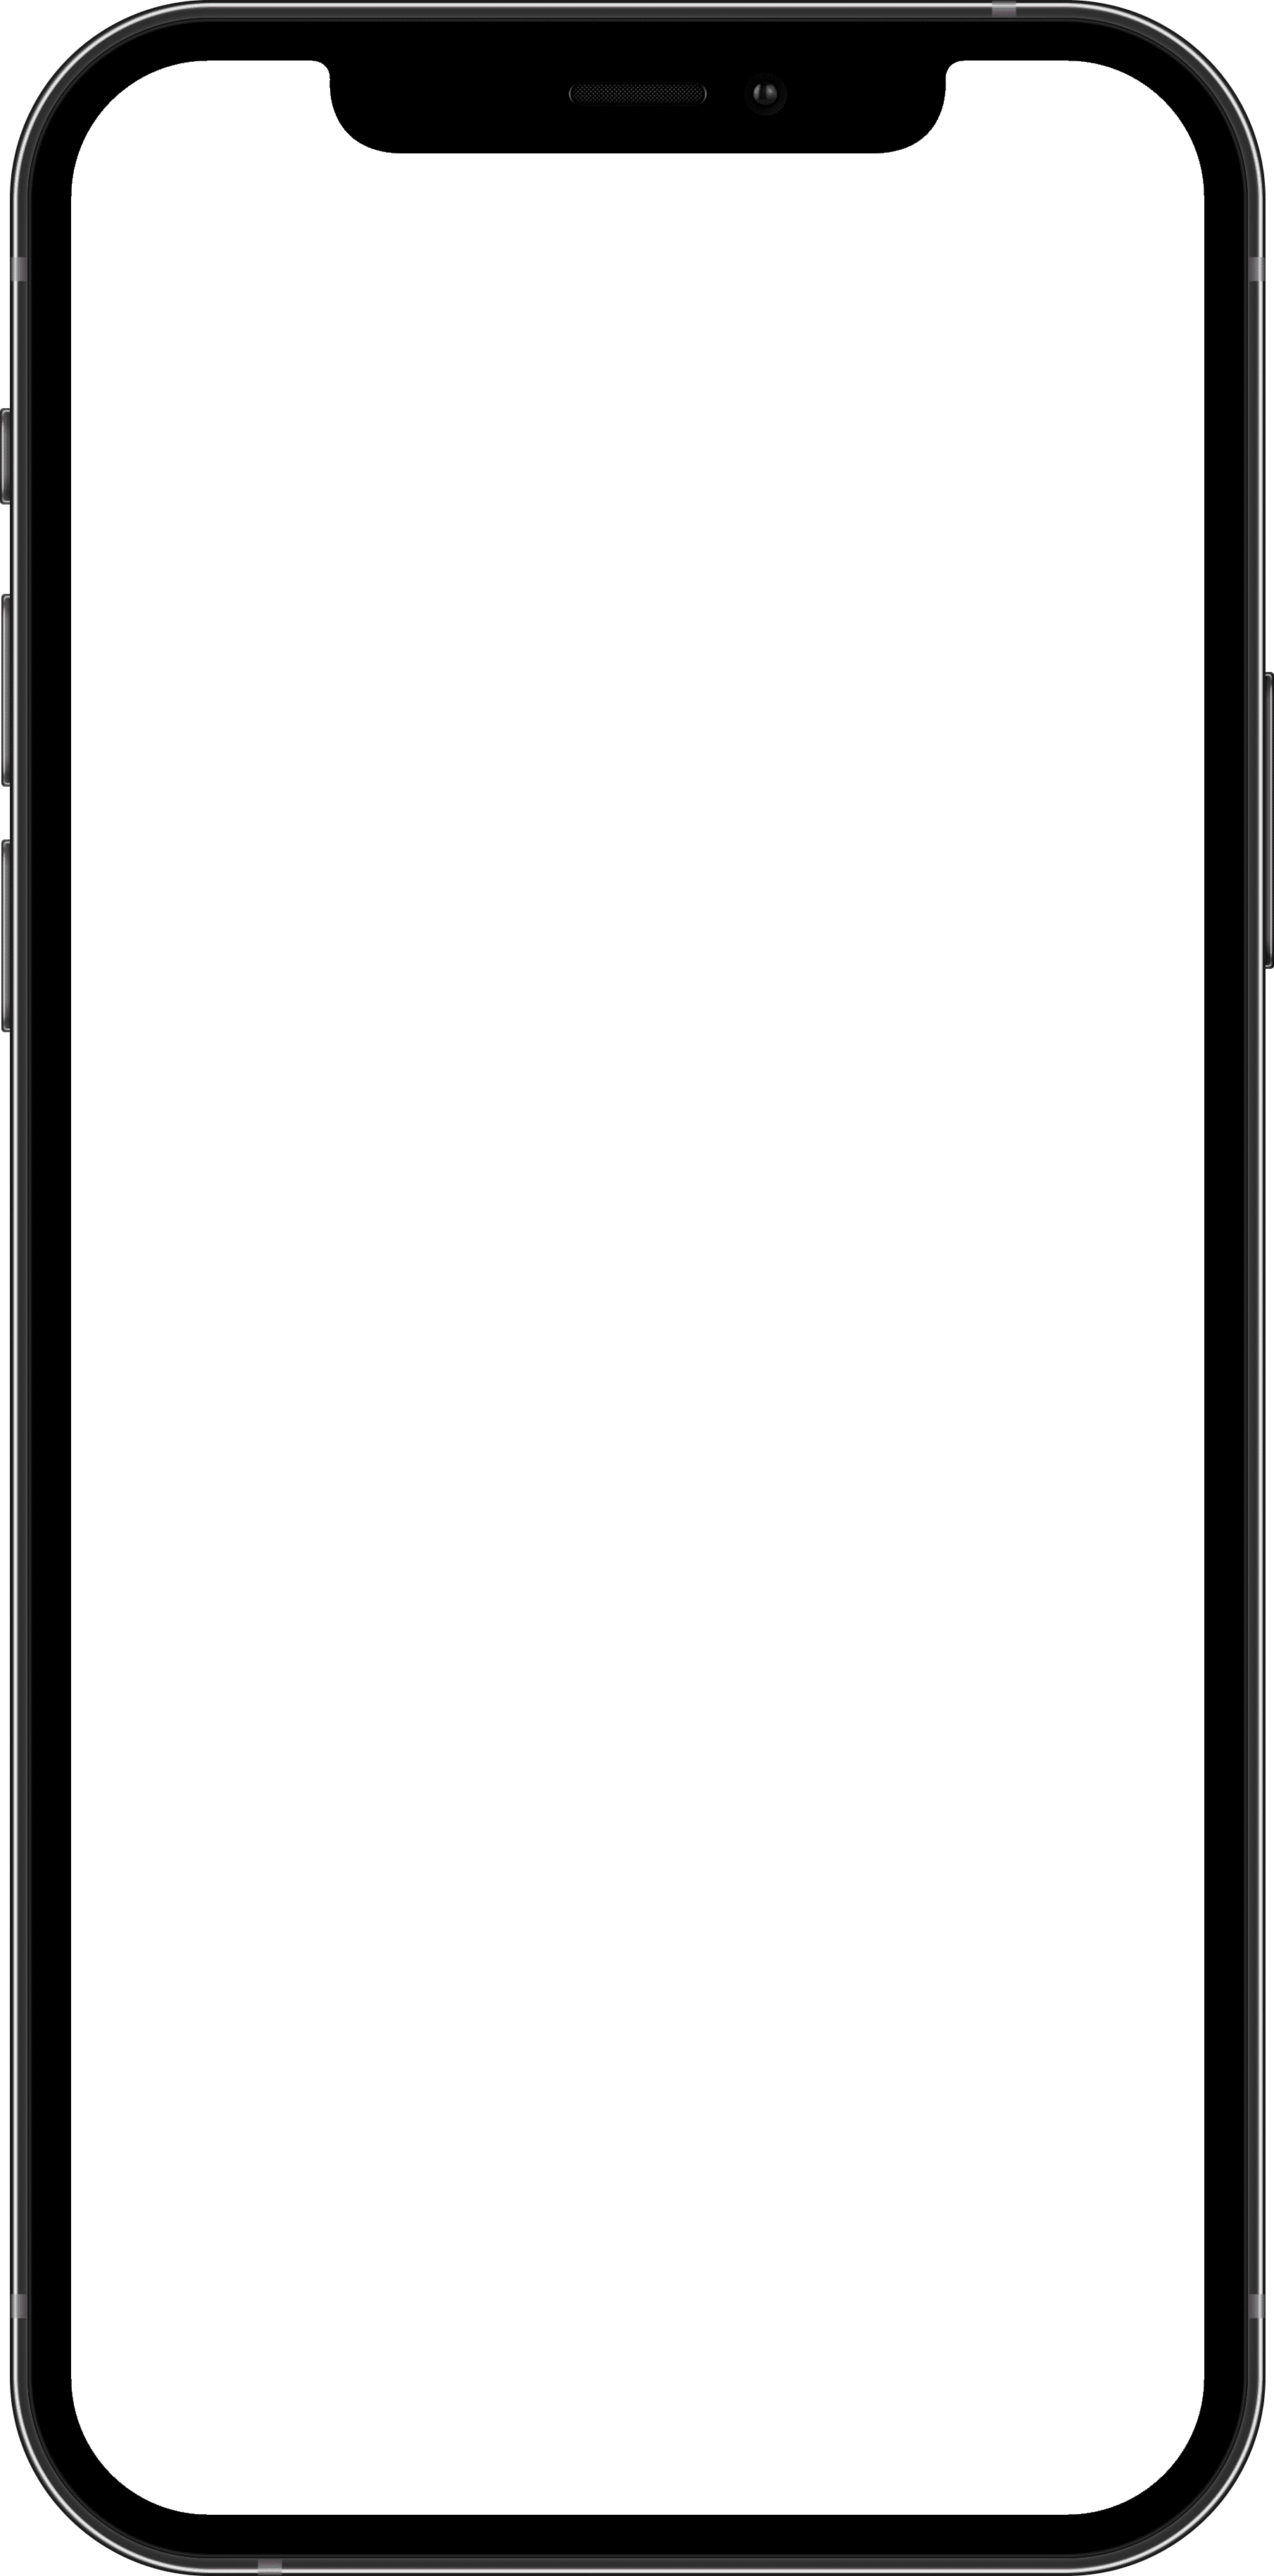 iPhone 12 outline